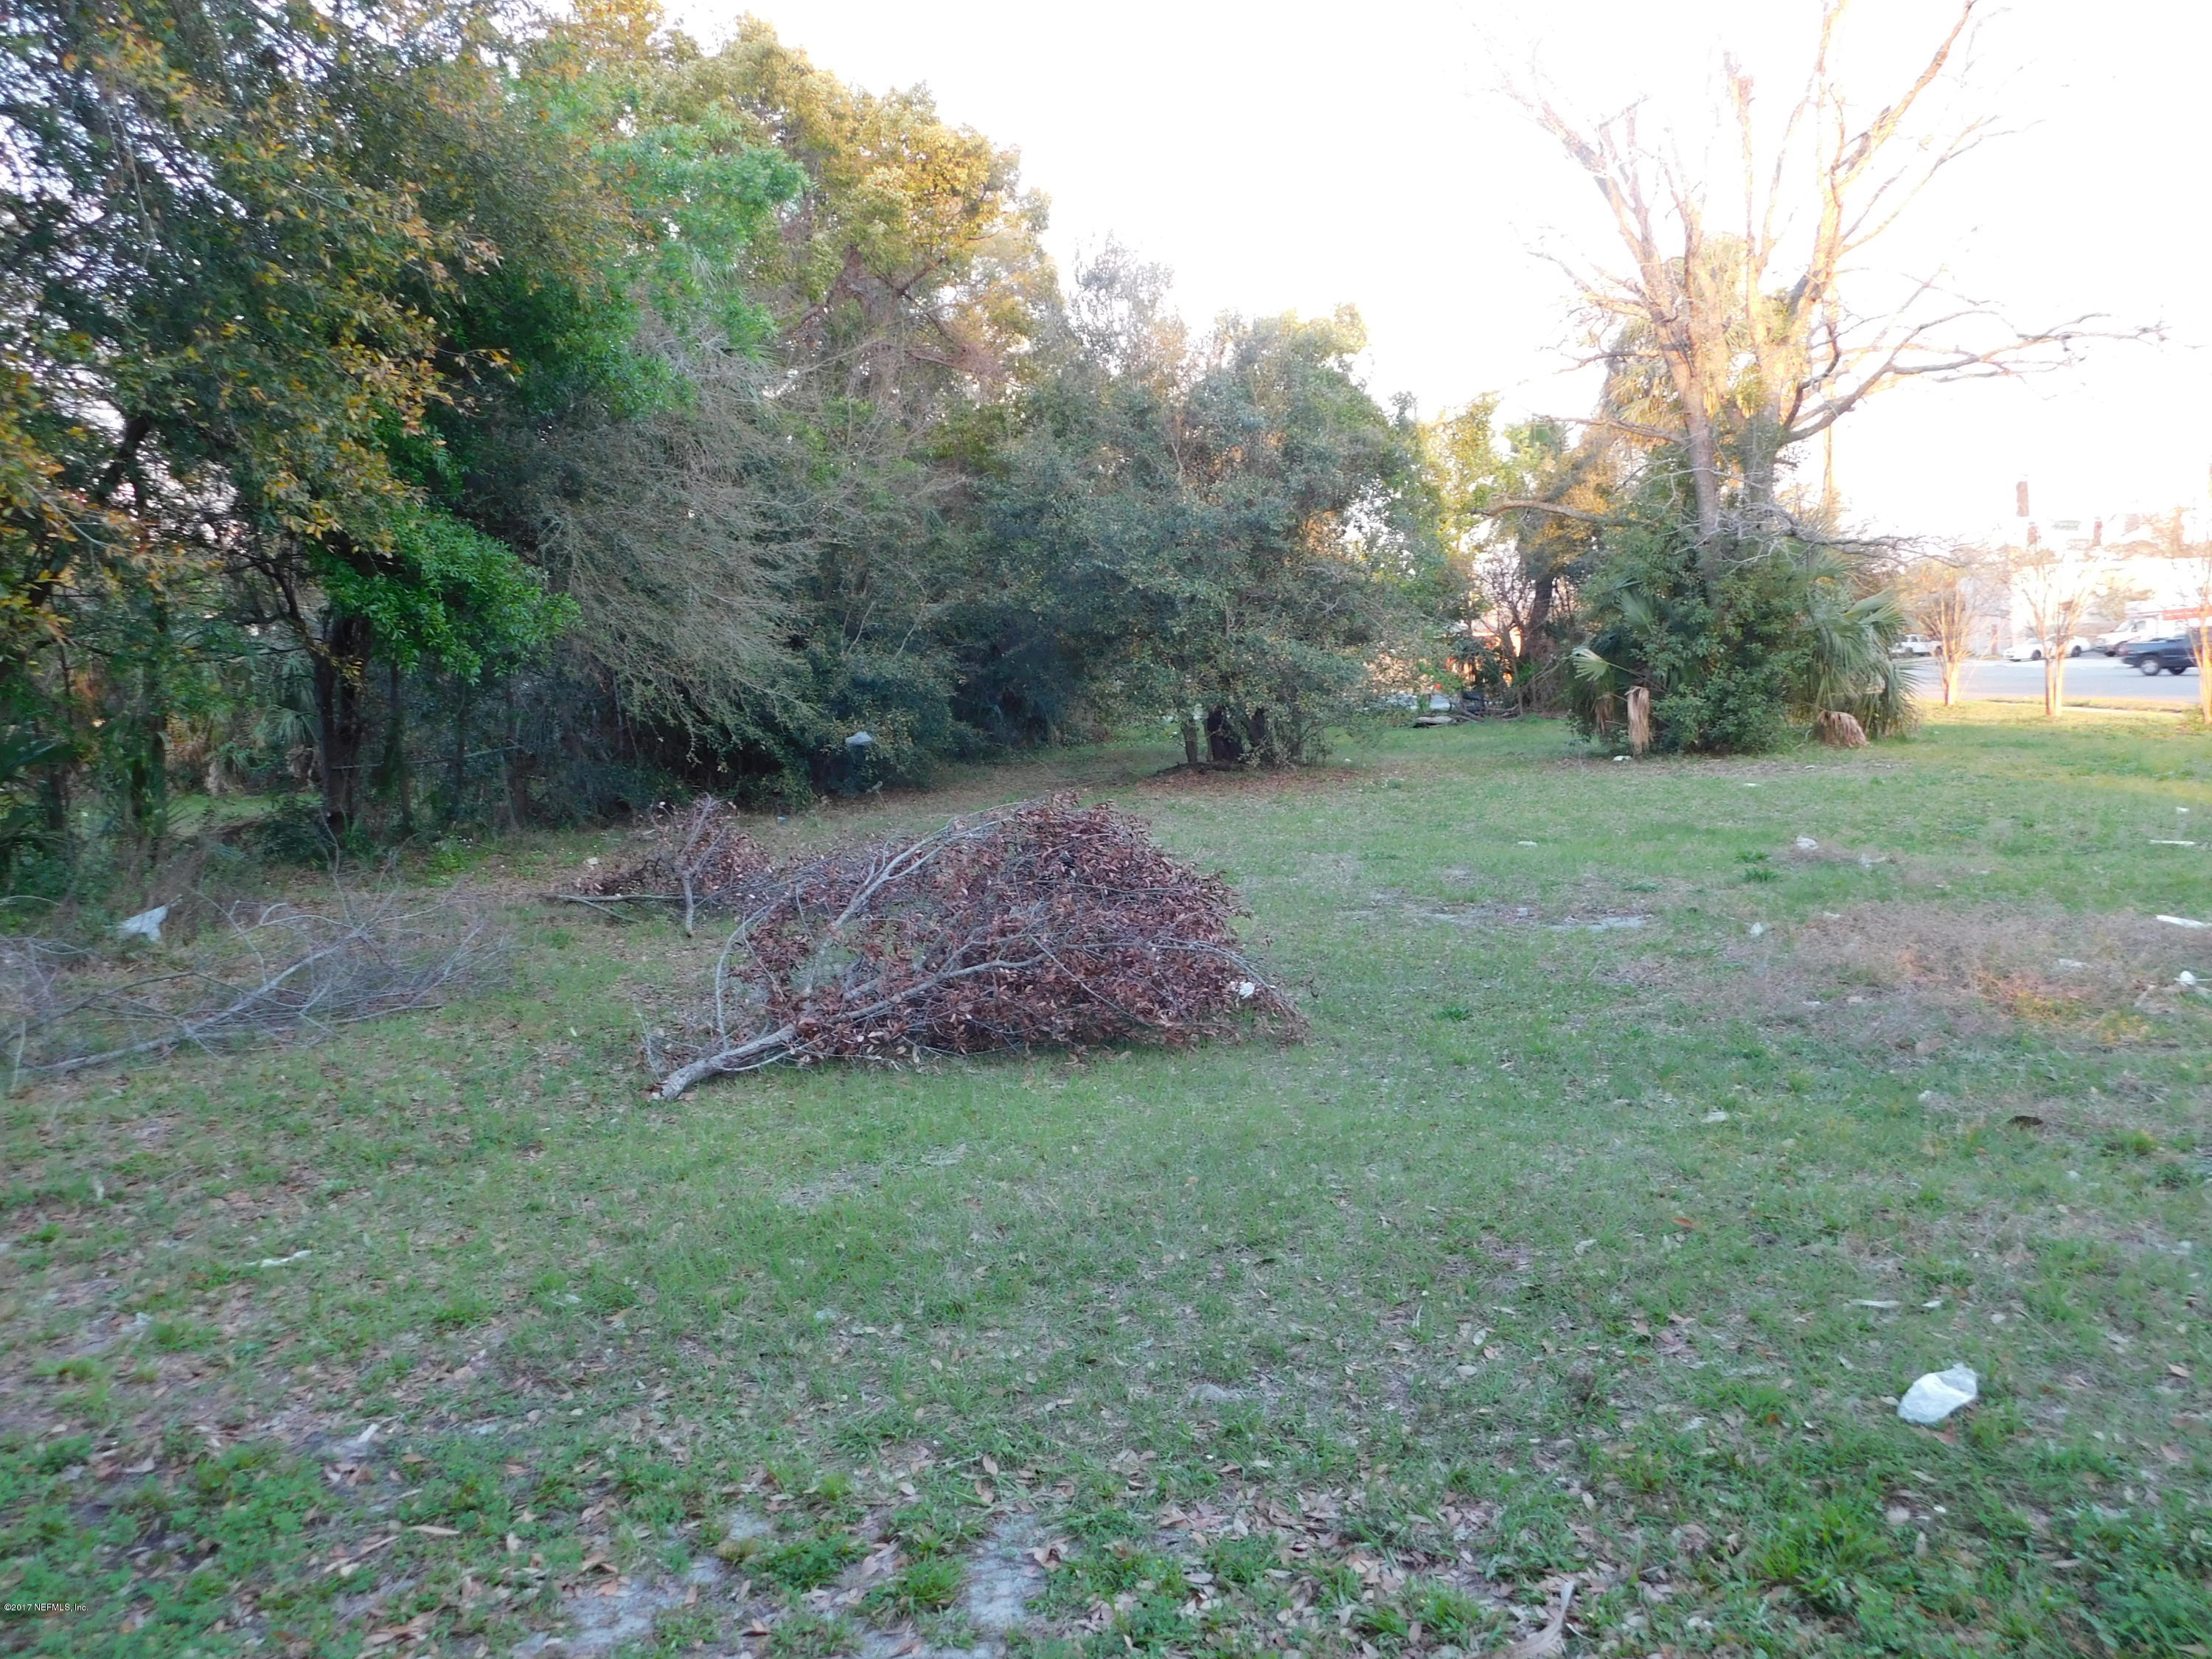 0 FLORIDA, JACKSONVILLE, FLORIDA 32206, ,Vacant land,For sale,FLORIDA,869519